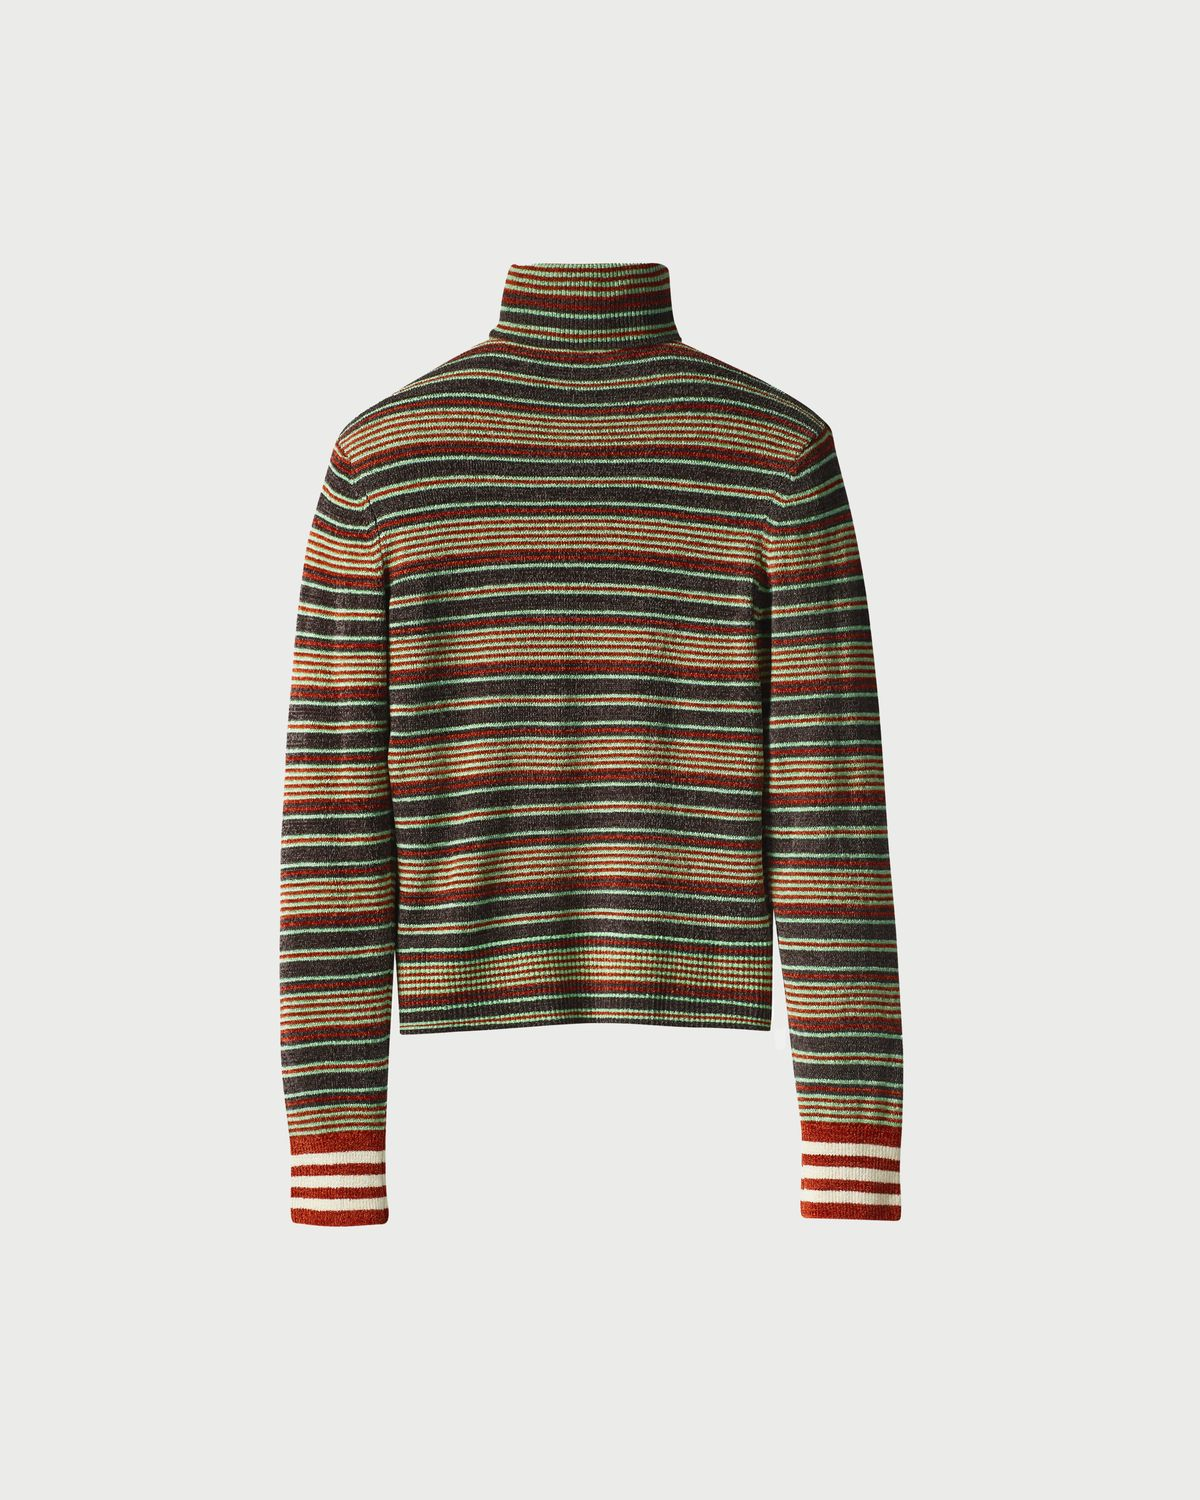 Adidas x Wales Bonner - Roll Neck Multi - Image 2